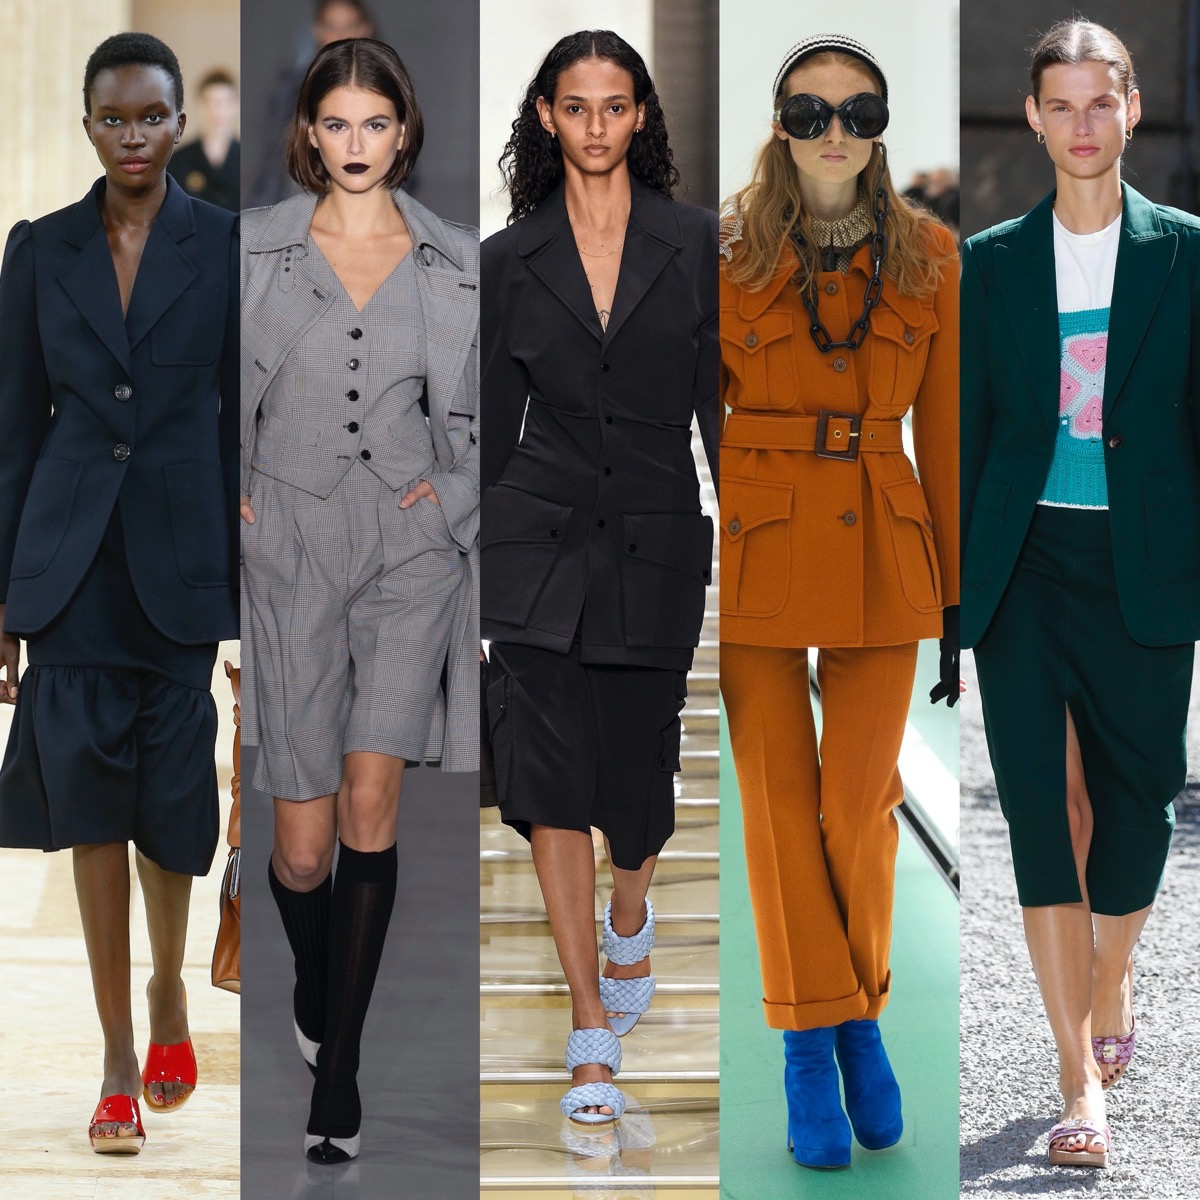 Suits: 7 New Styles & How To Wear Them